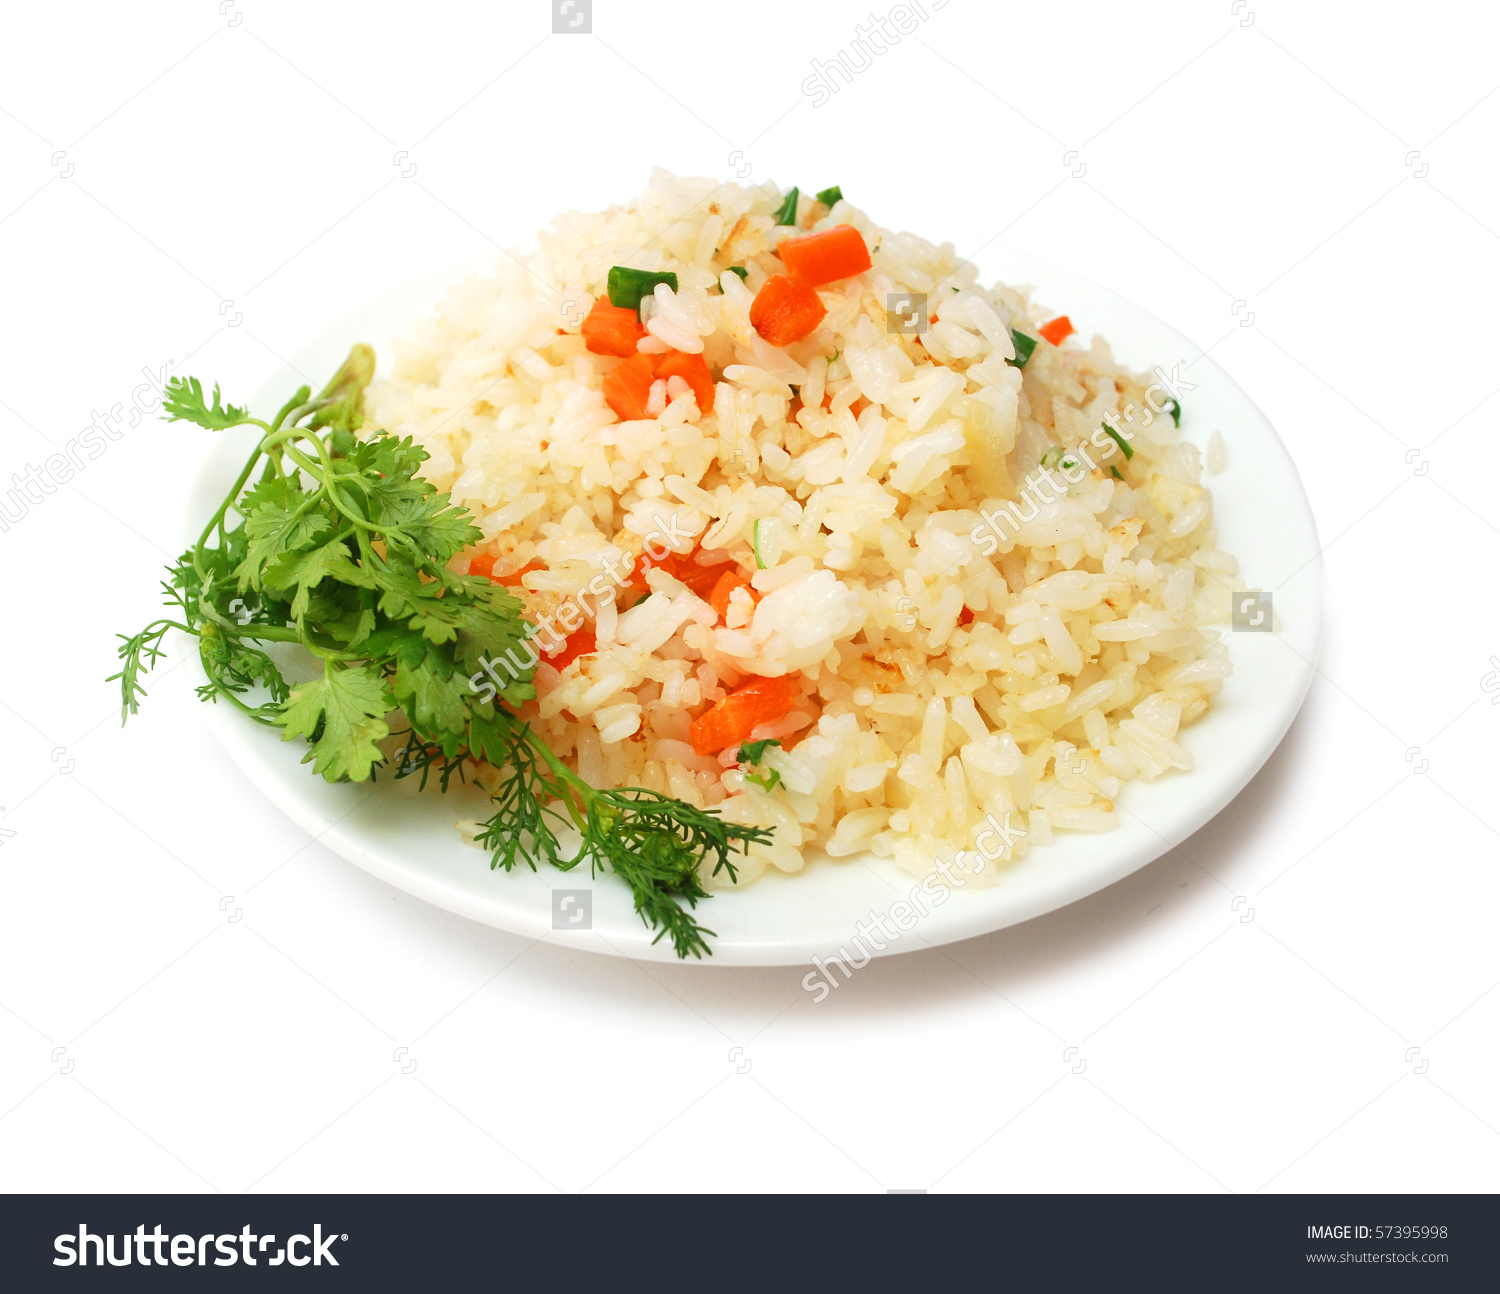 Fried Rice Plate Stock Photo 57395998.